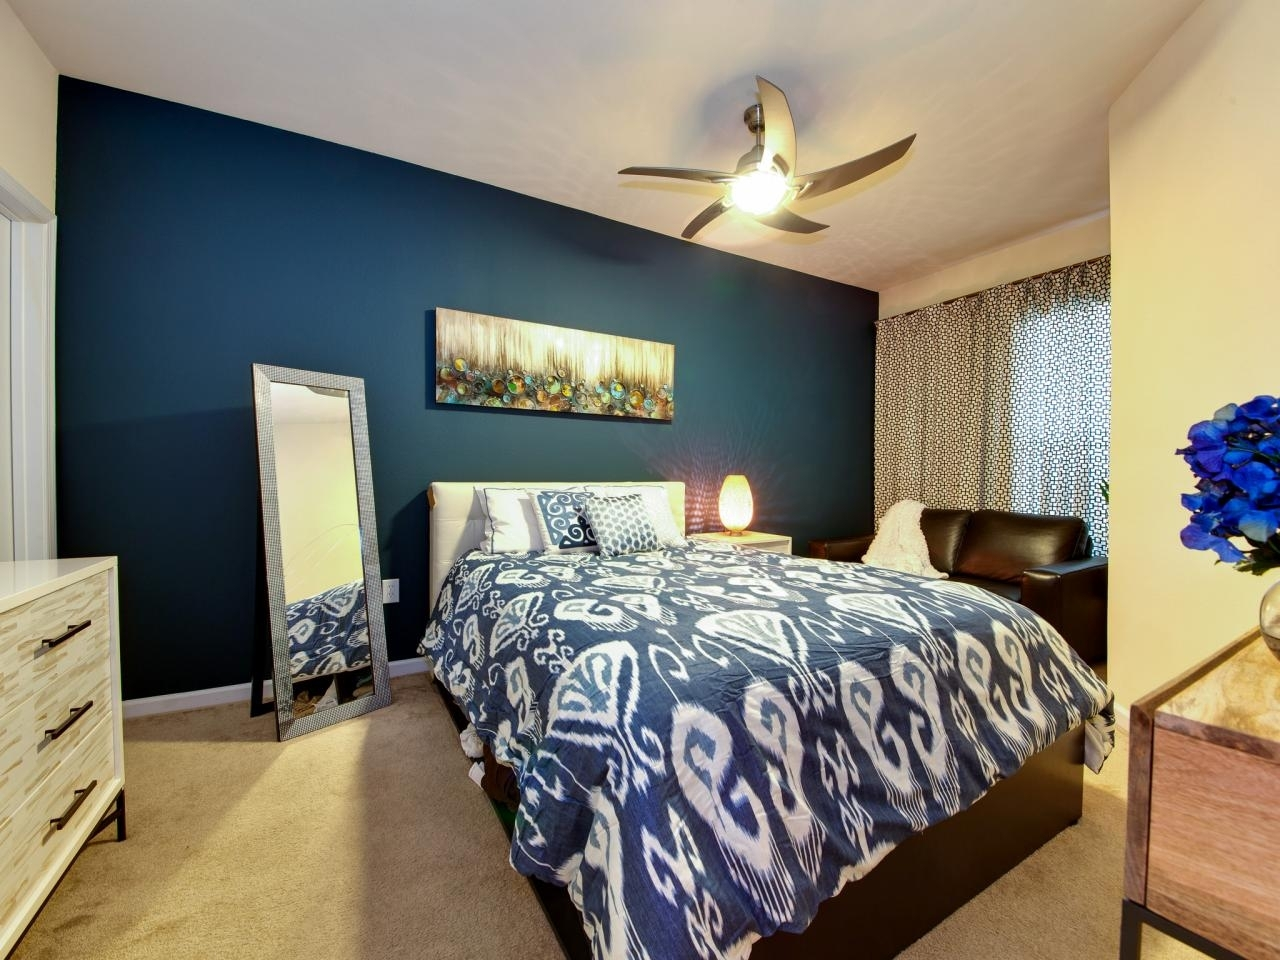 Bedroom | Navy Blue Wall Accent With Wheat Color Base Combination Intended For Latest Navy Wall Accents (View 5 of 15)